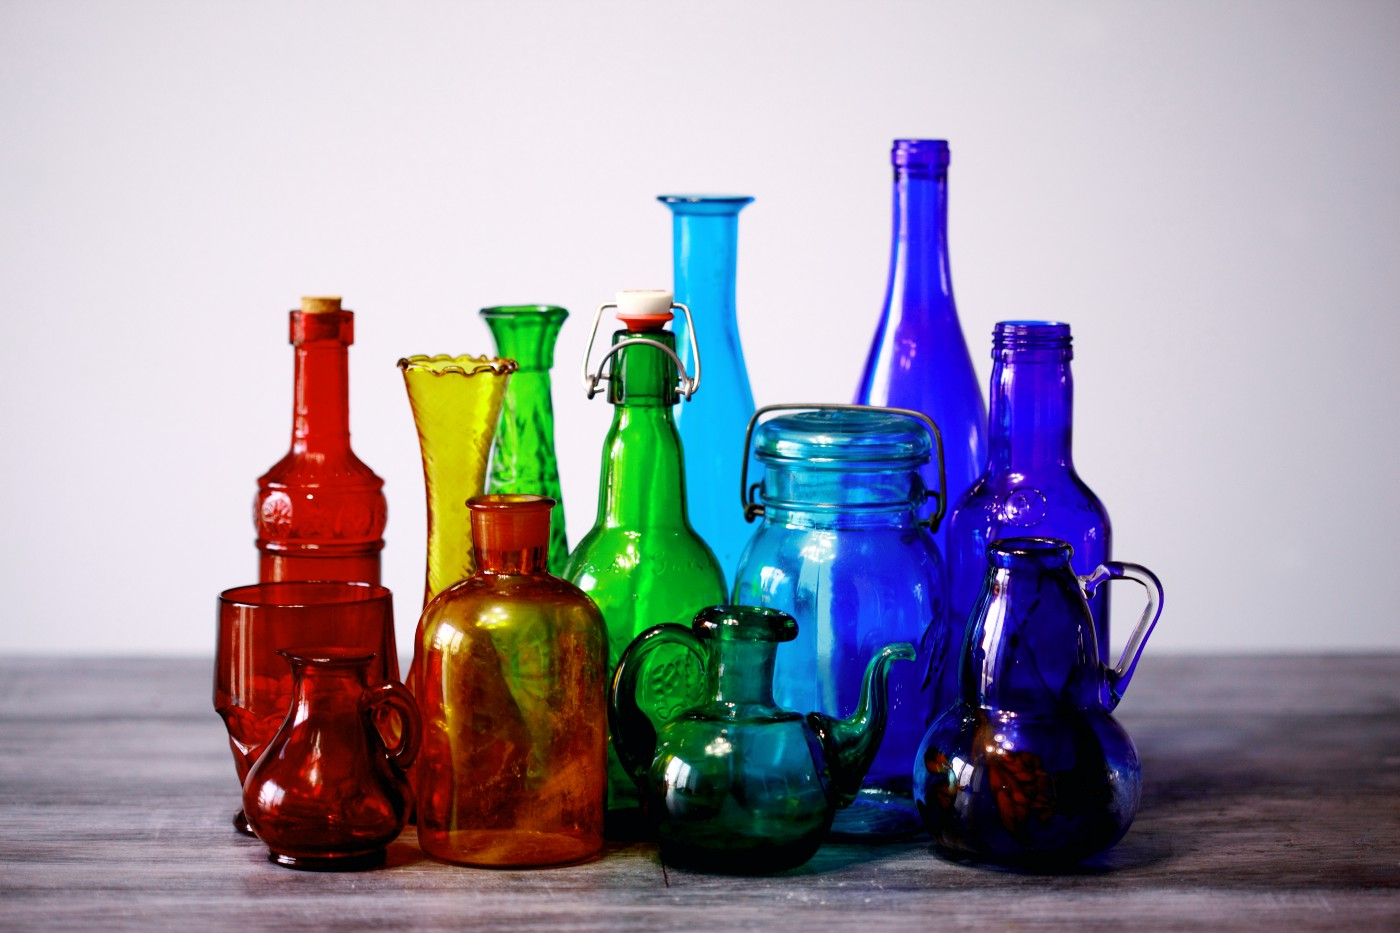 Glass bottles and jugs organized by color